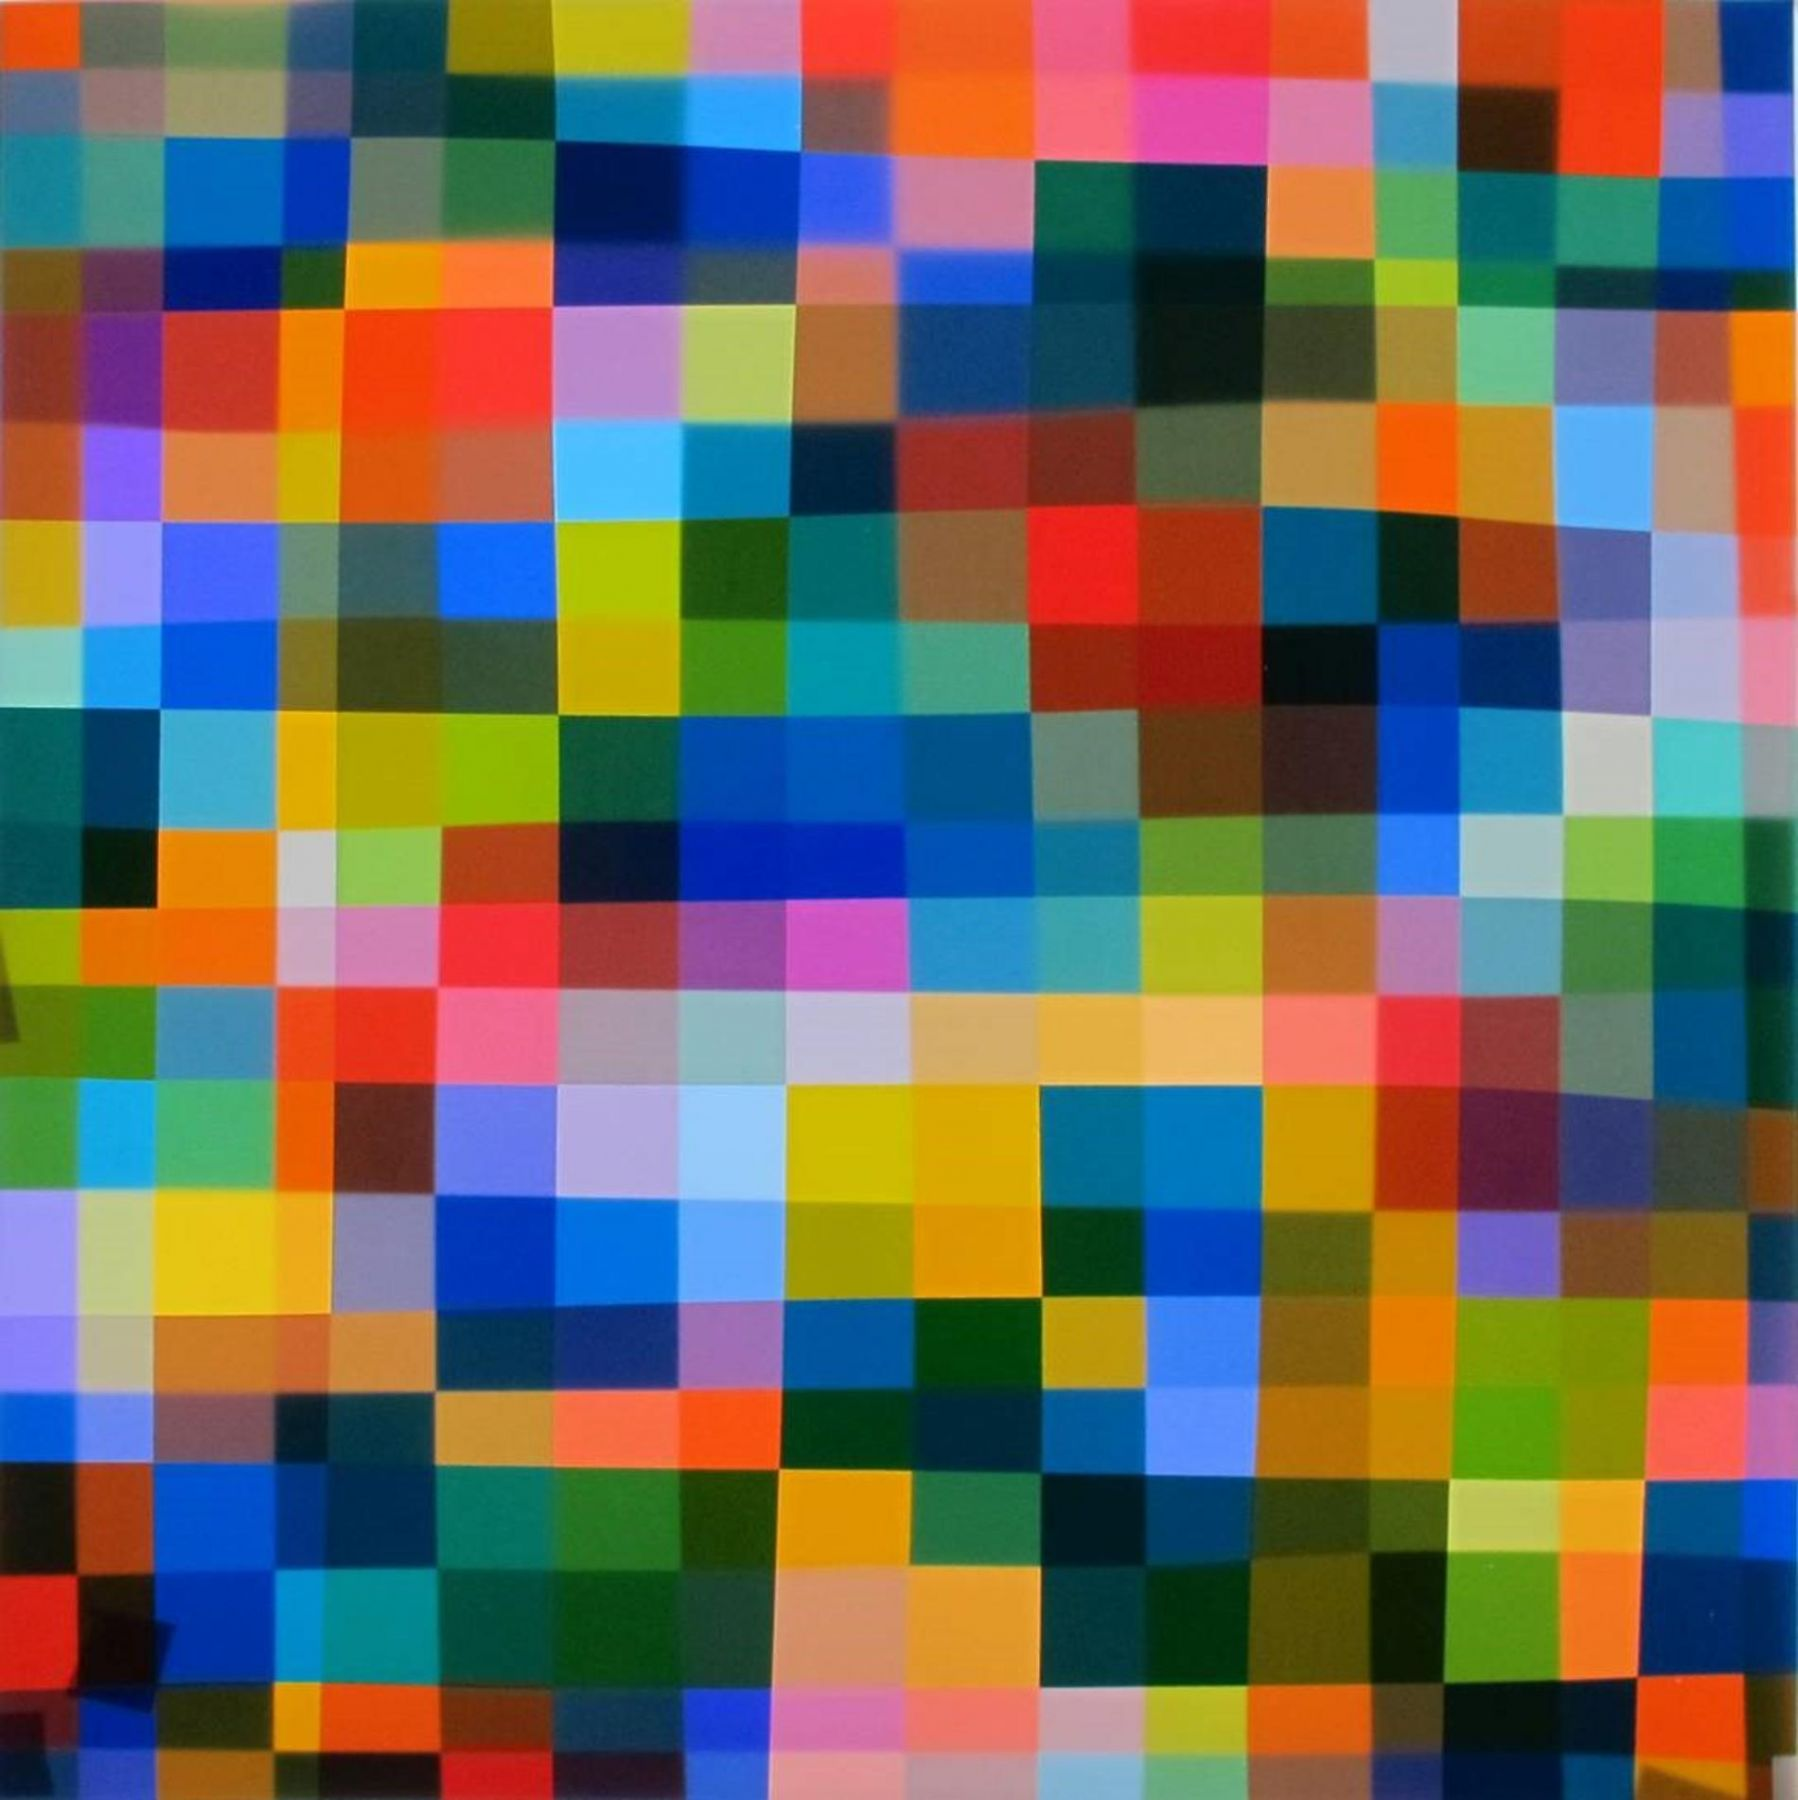 , SPENCER FINCH, Color Test (360), 2014, LED lightbox, Fujitrans, 30 x 30 x 4 1/2 in.